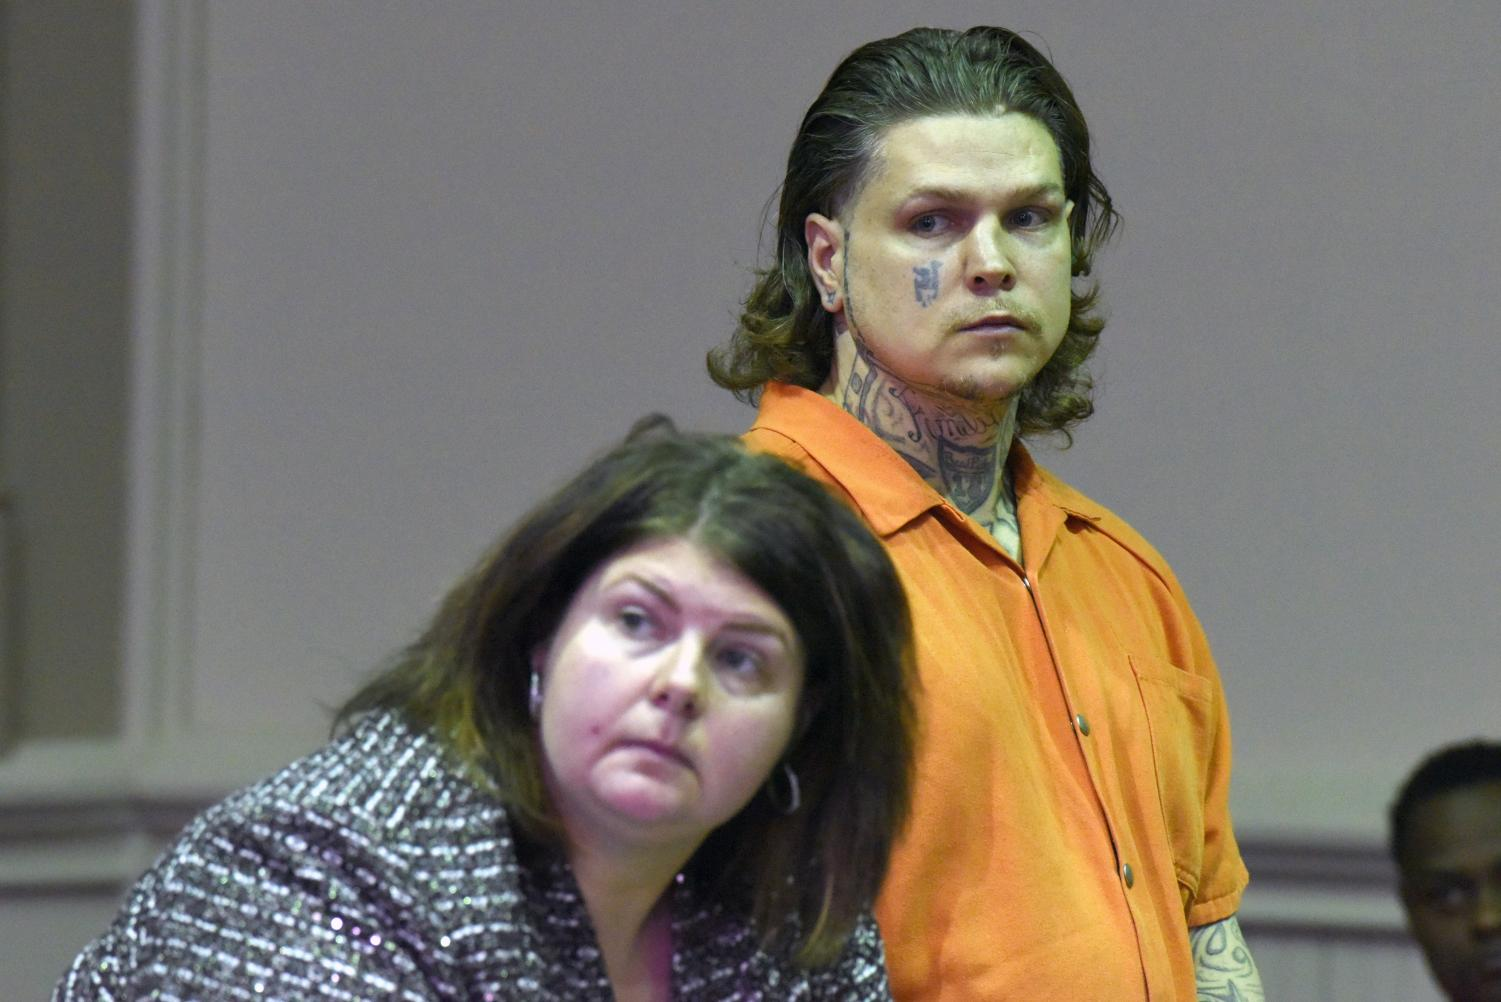 John Hampton (back) stands in court with his defense attorney Kendra Kinney (front).